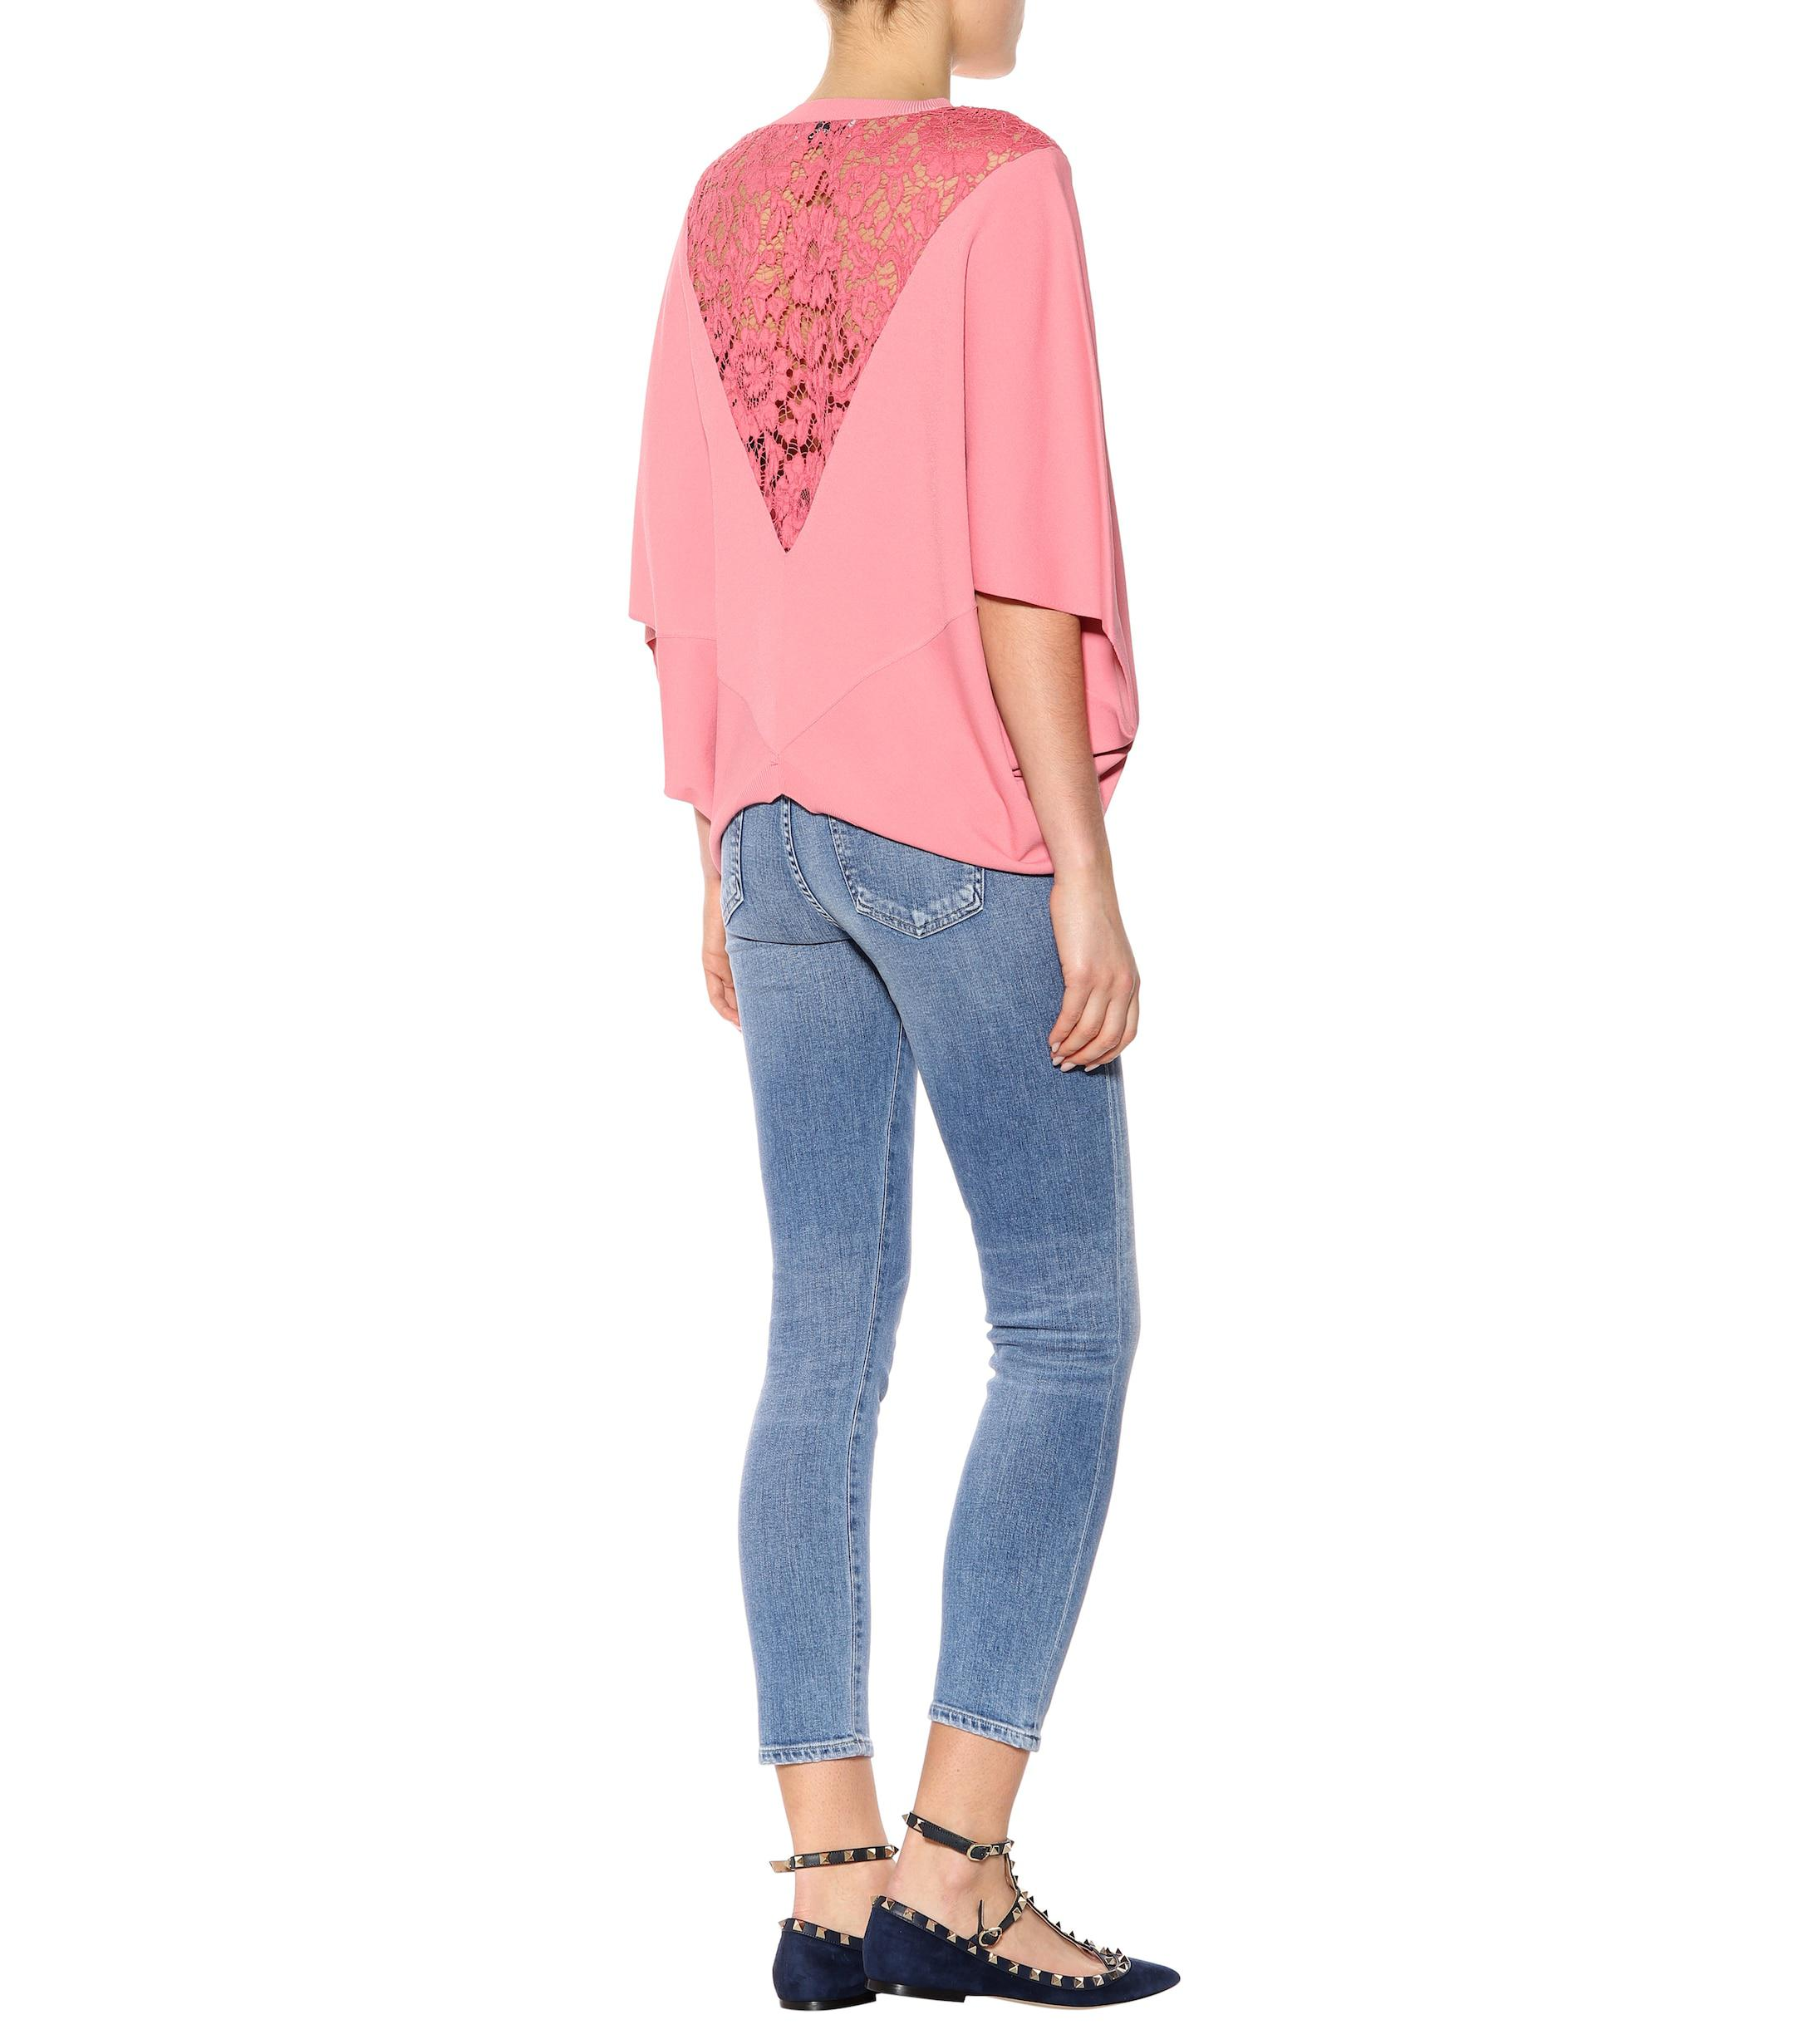 6a7367779c4 valentino-candy-pink-Lace-trimmed-Cape-Sweater.jpeg